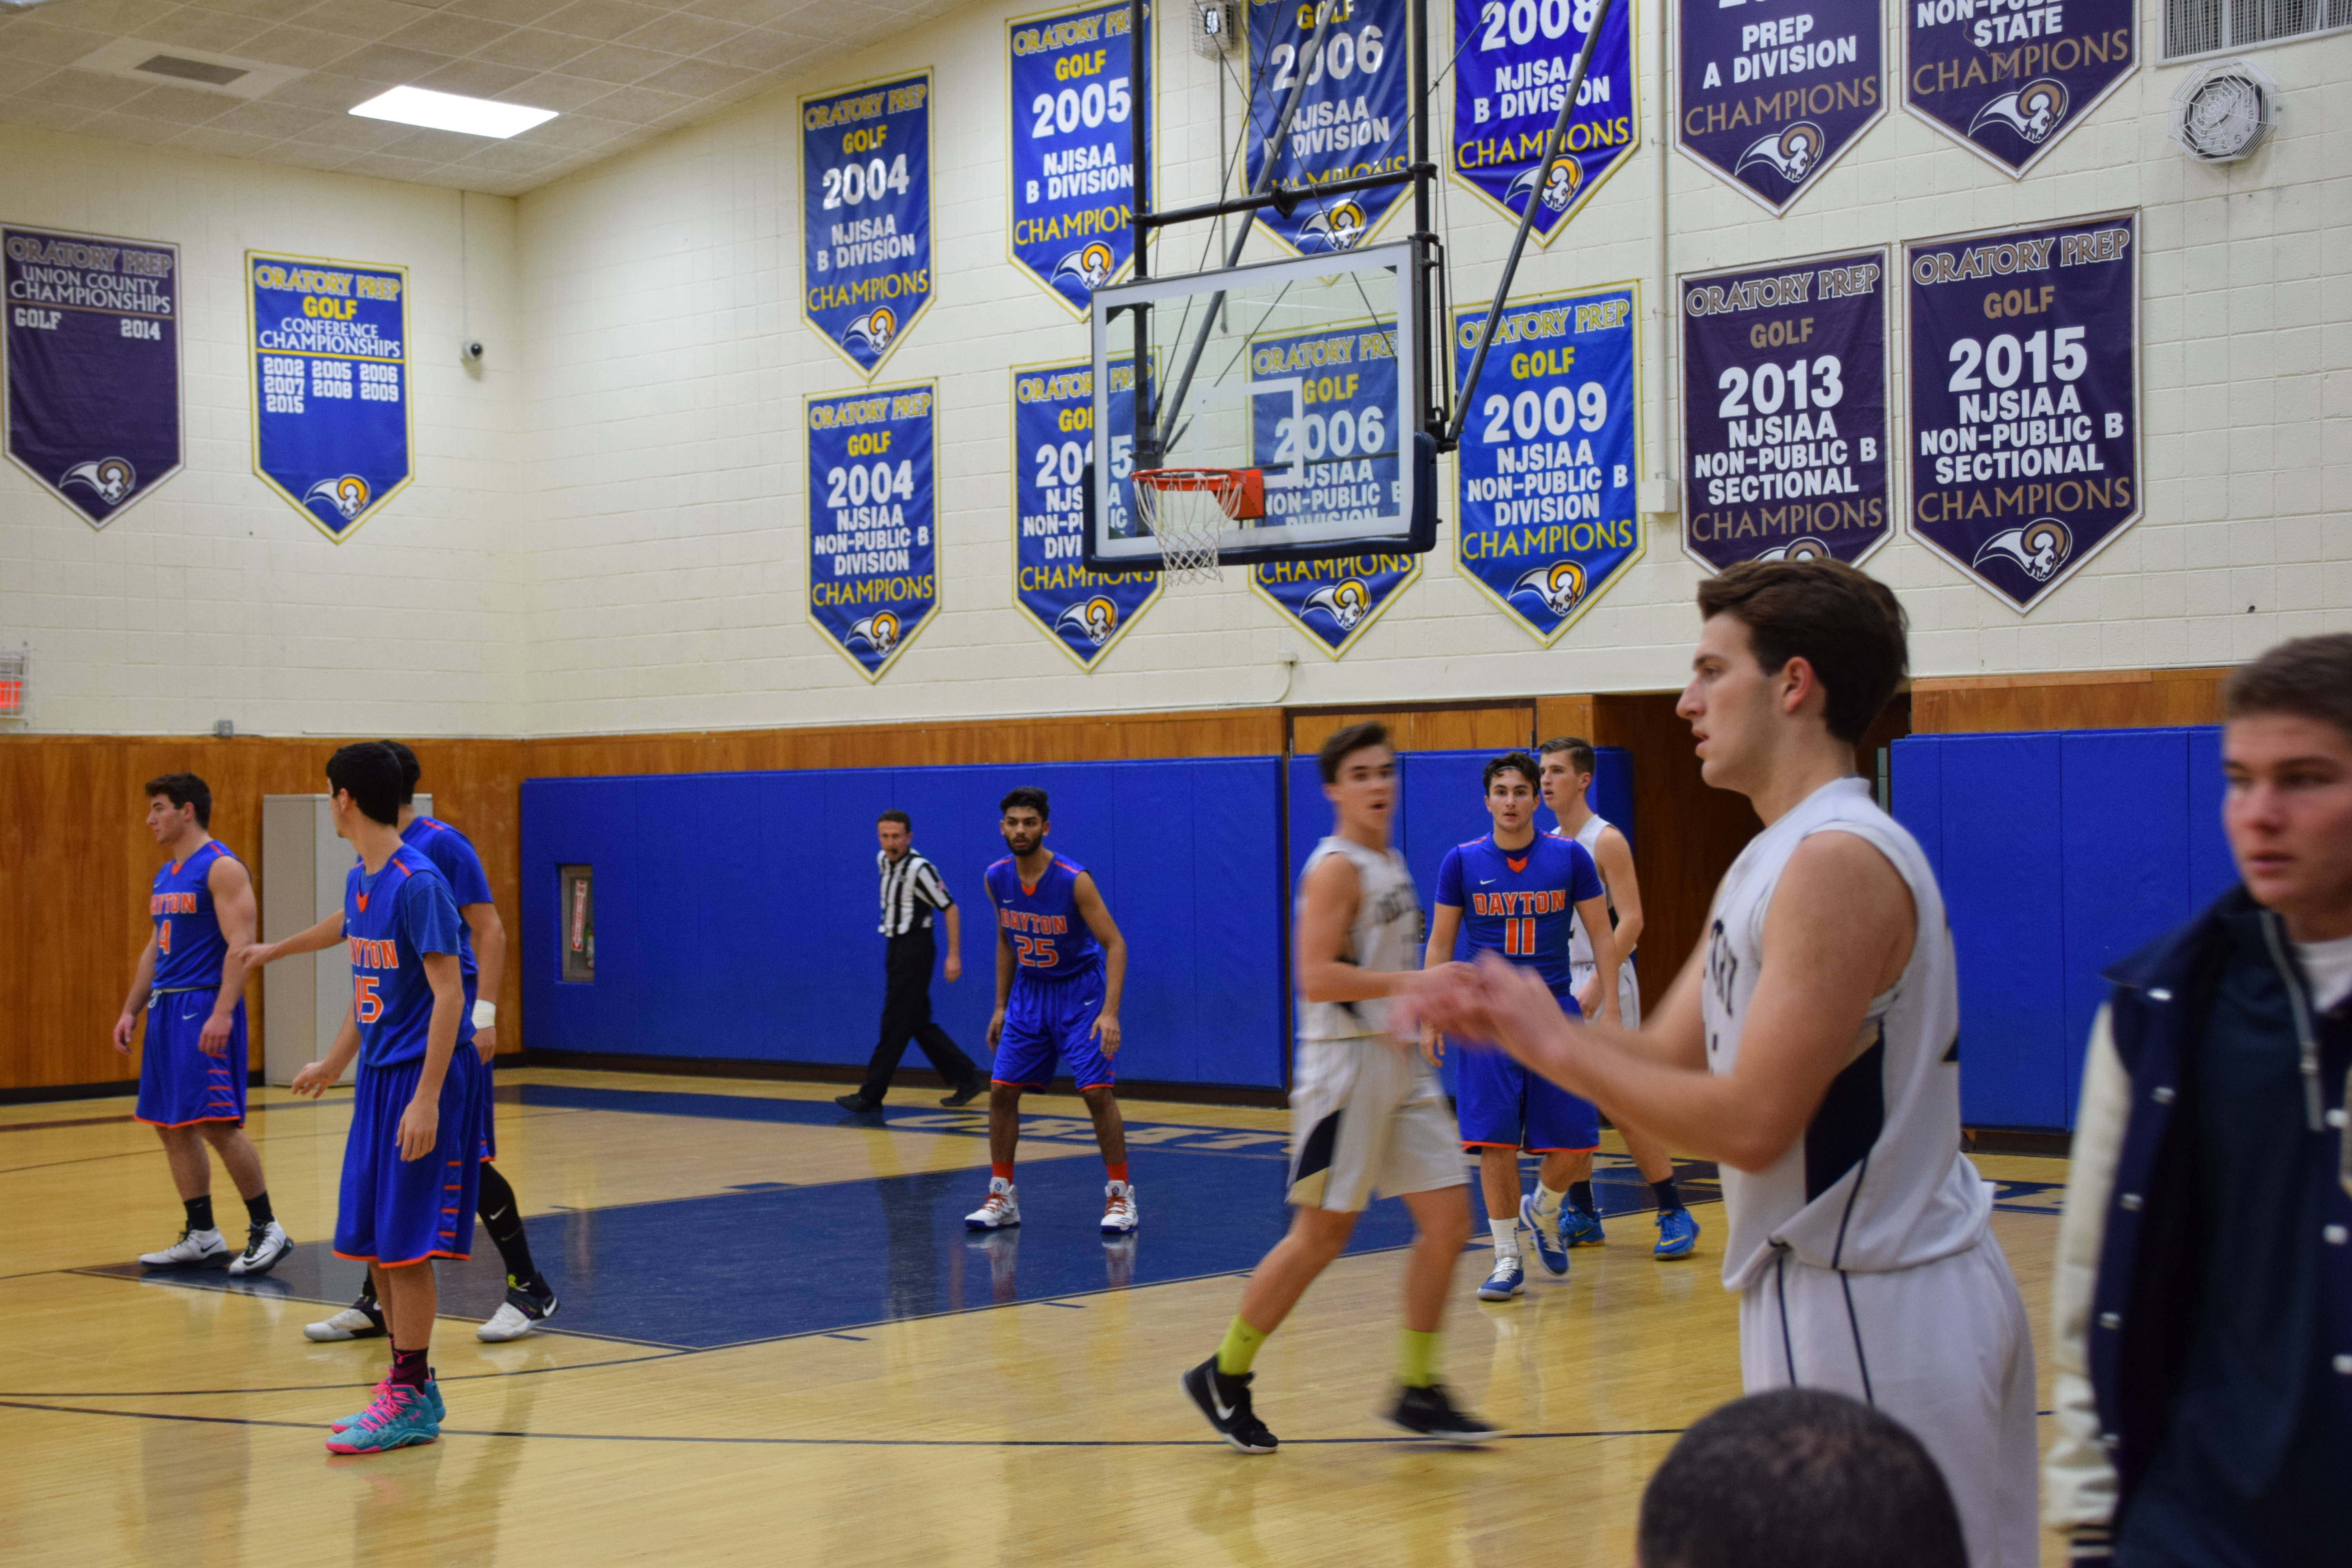 52e8eacf801a615e5bfd_Jan1717Boys2.jpg